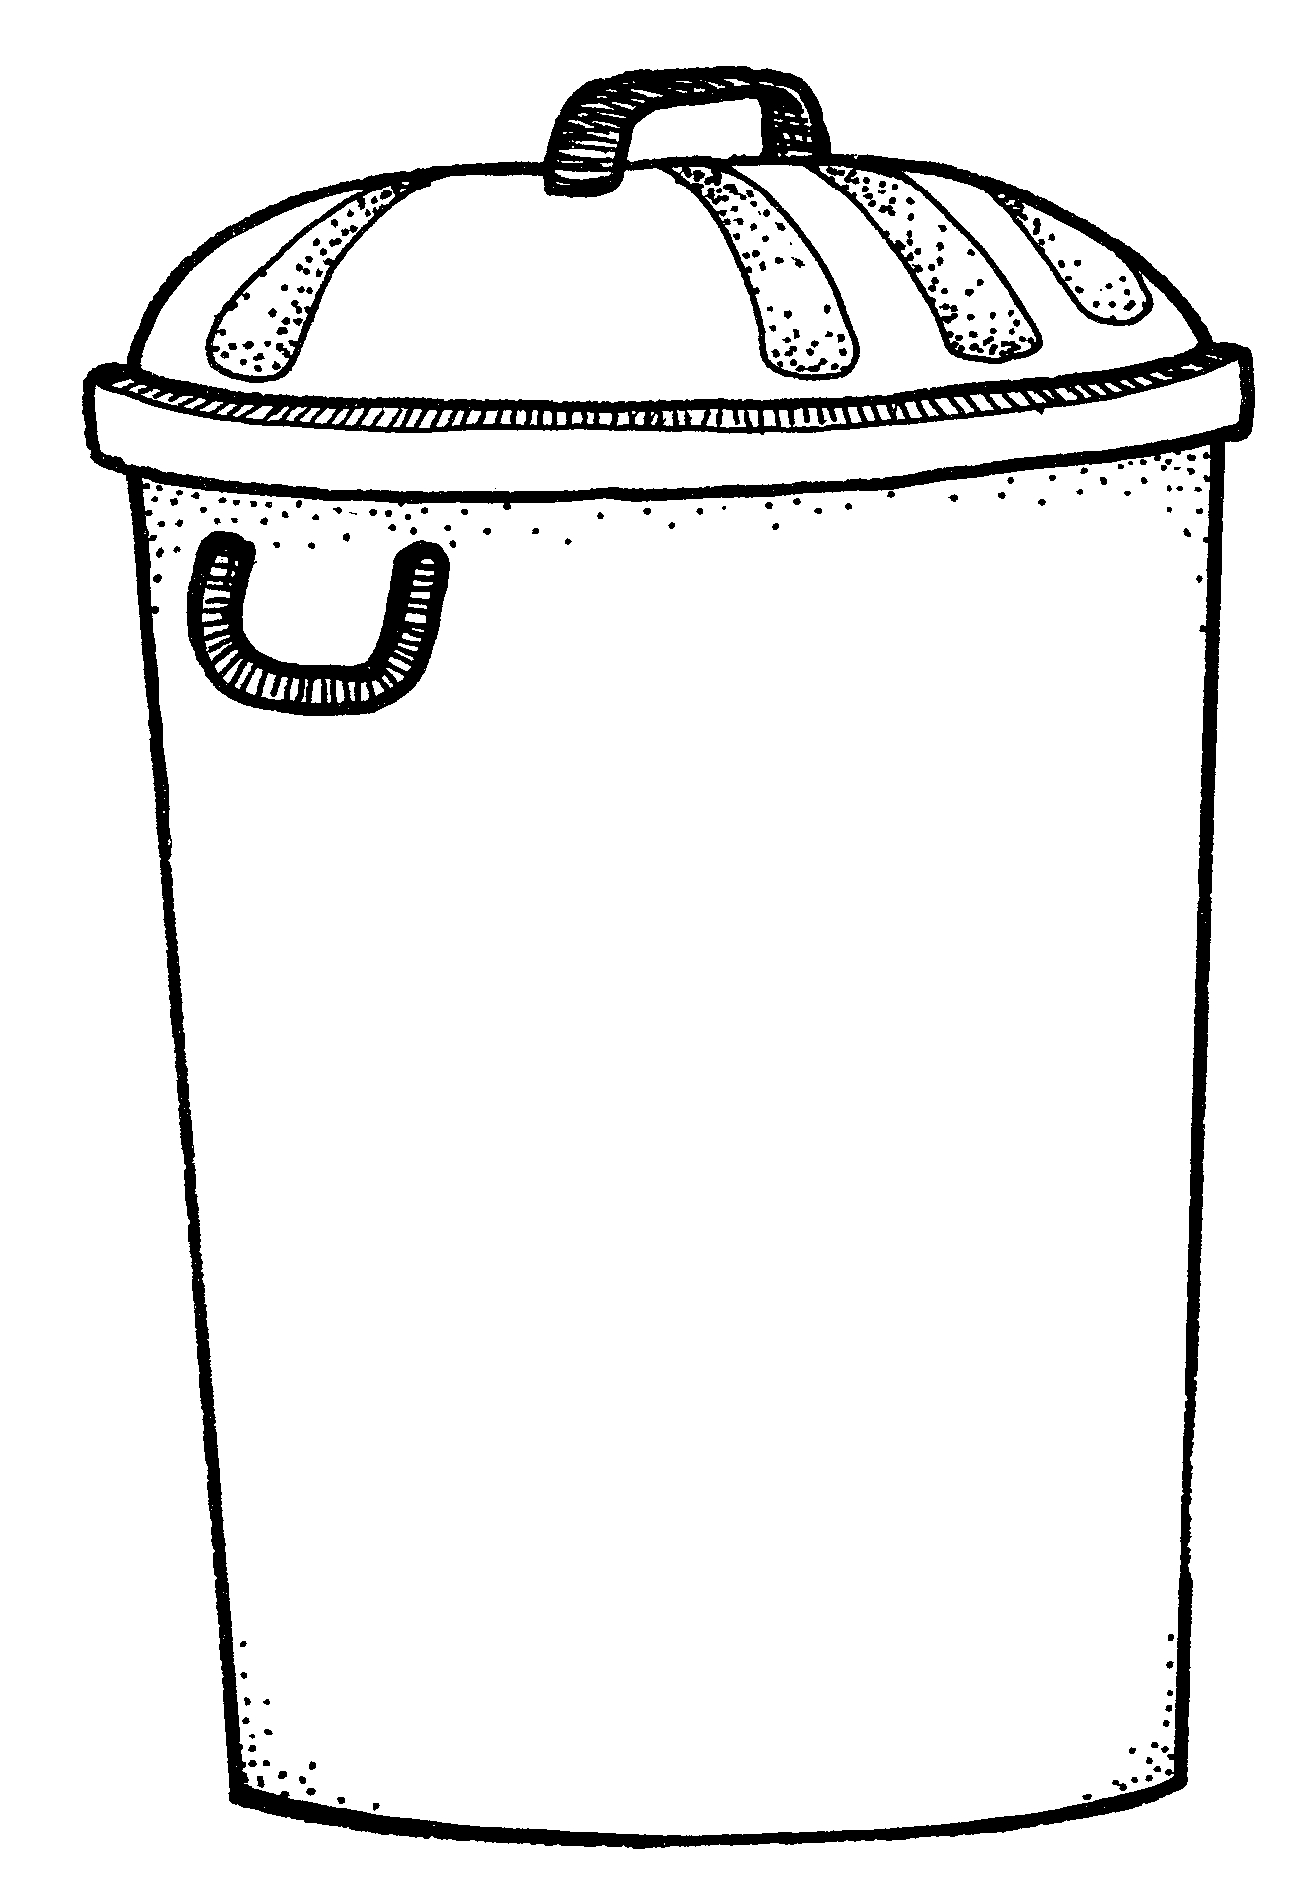 Free Trash Can Clipart Black And White, Download Free Clip.